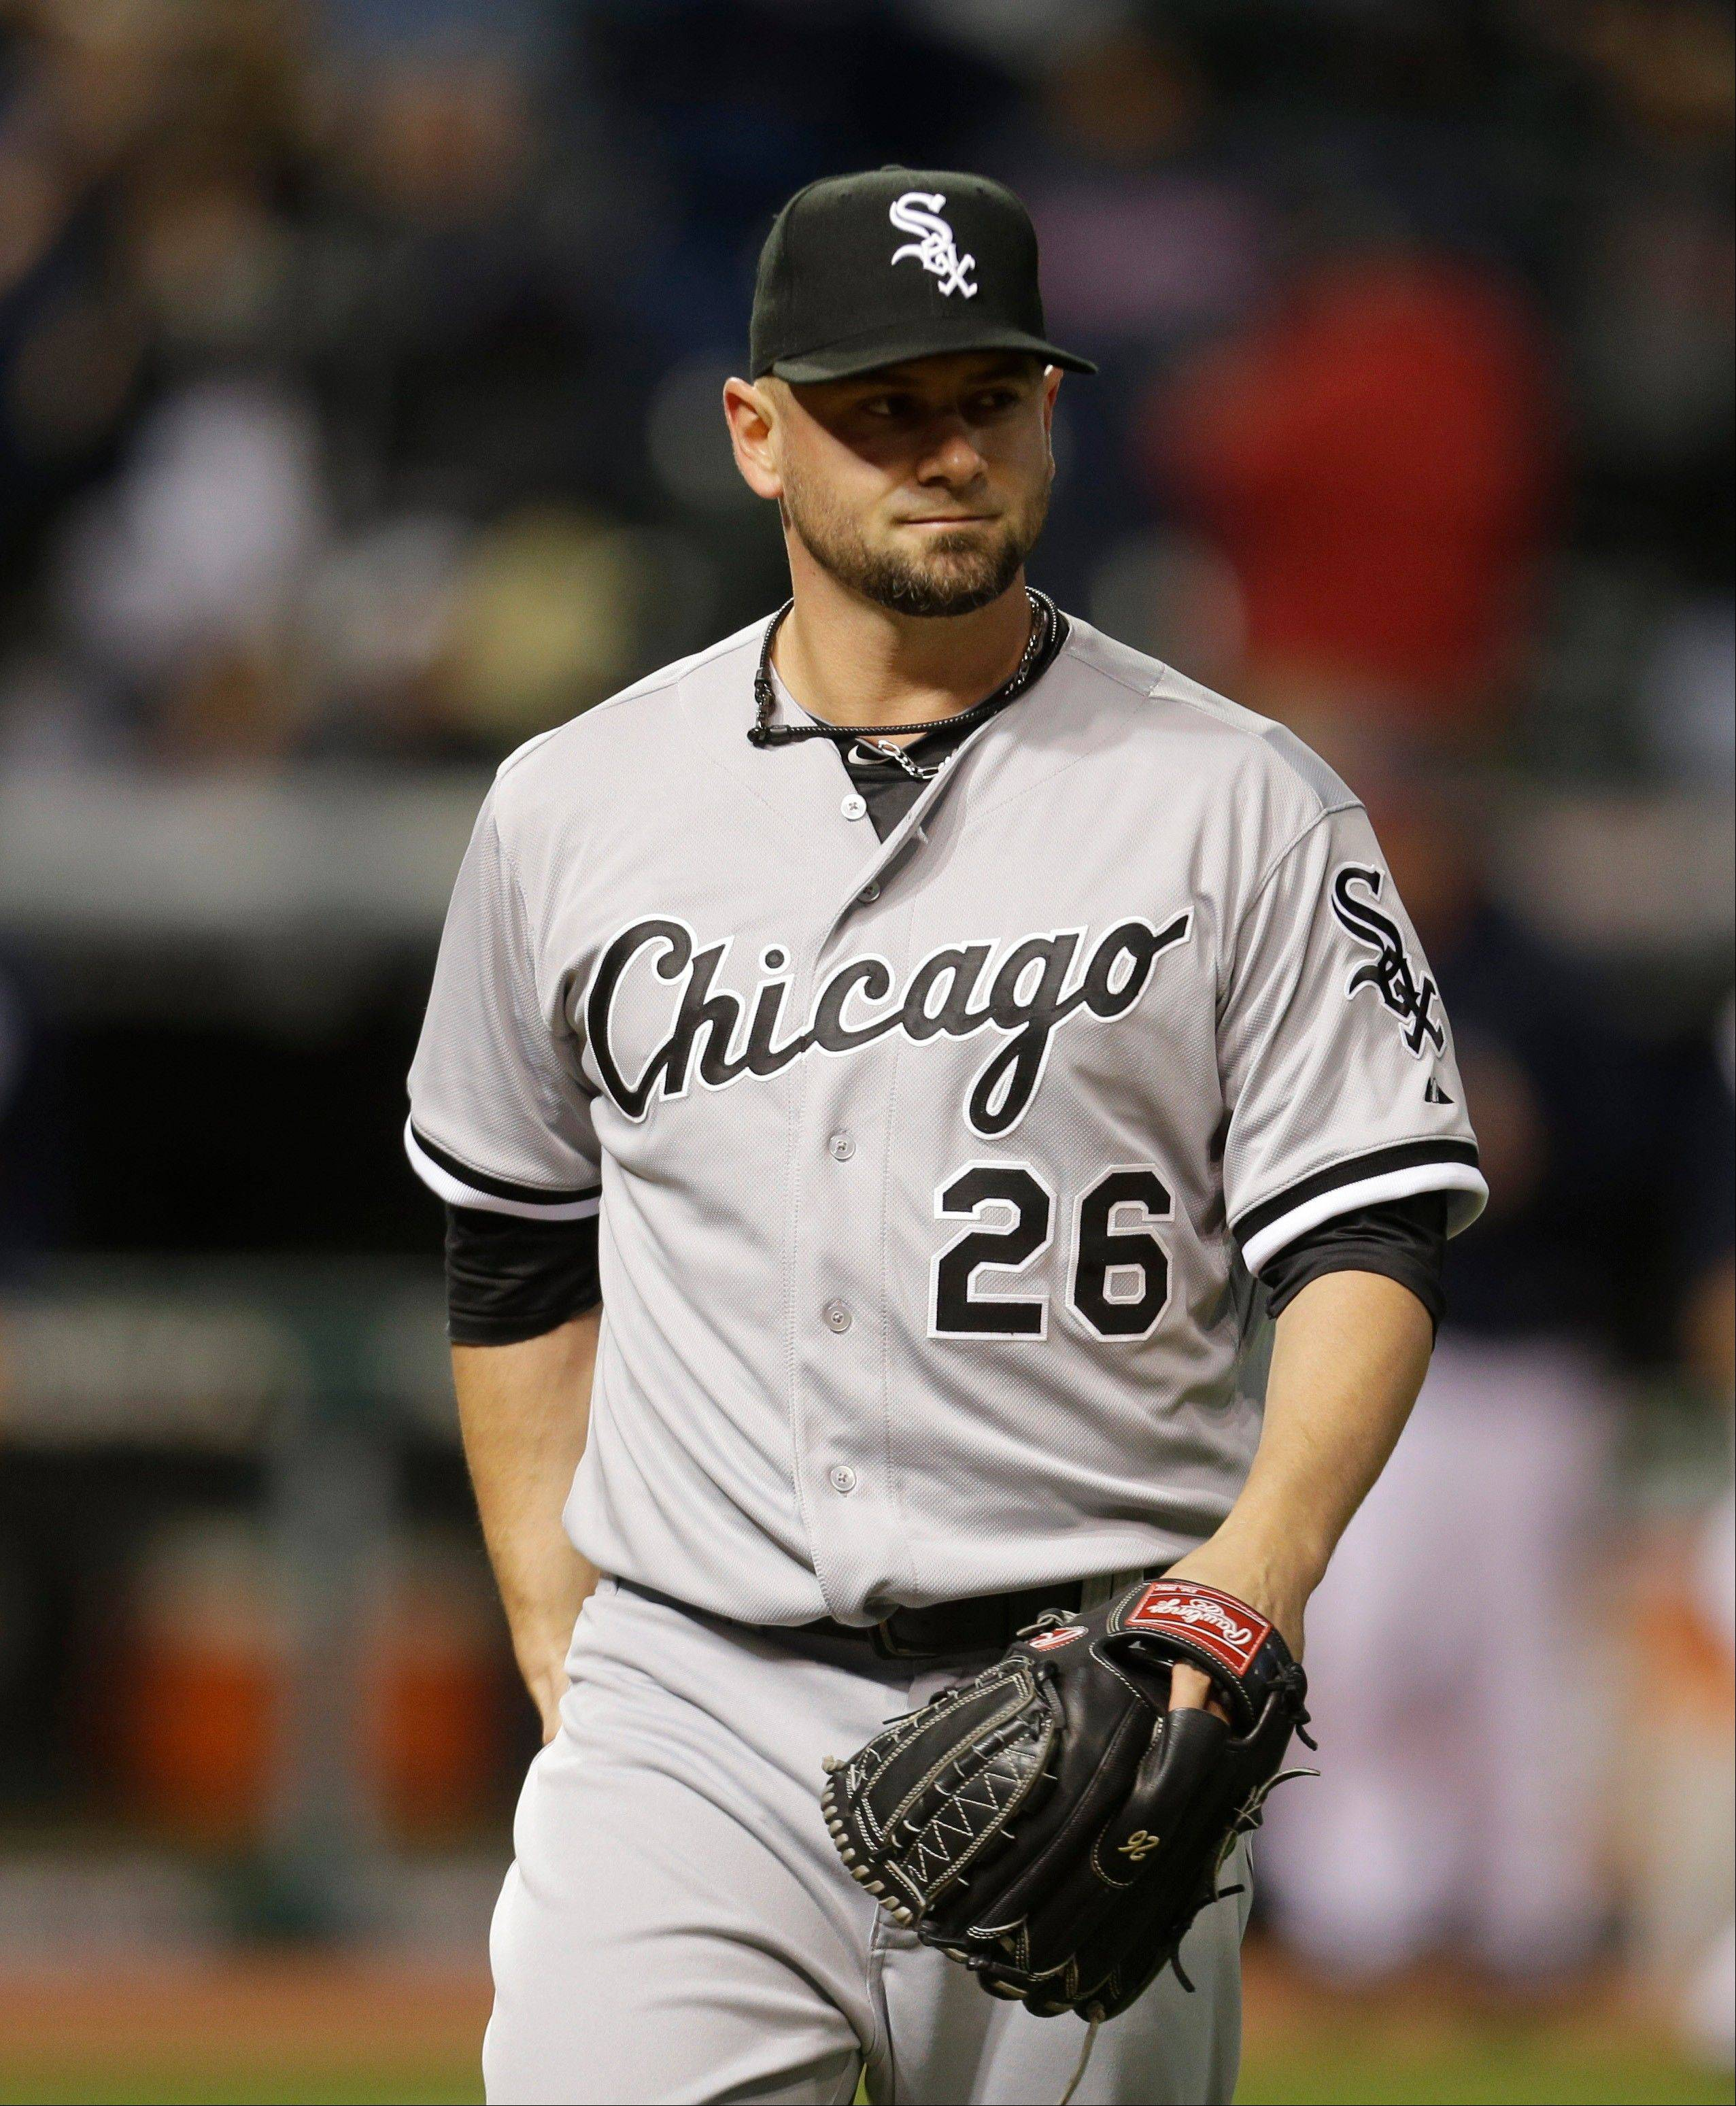 Jesse Crain had a streak of 29 straight appearances without allowing a run last season for the Sox.